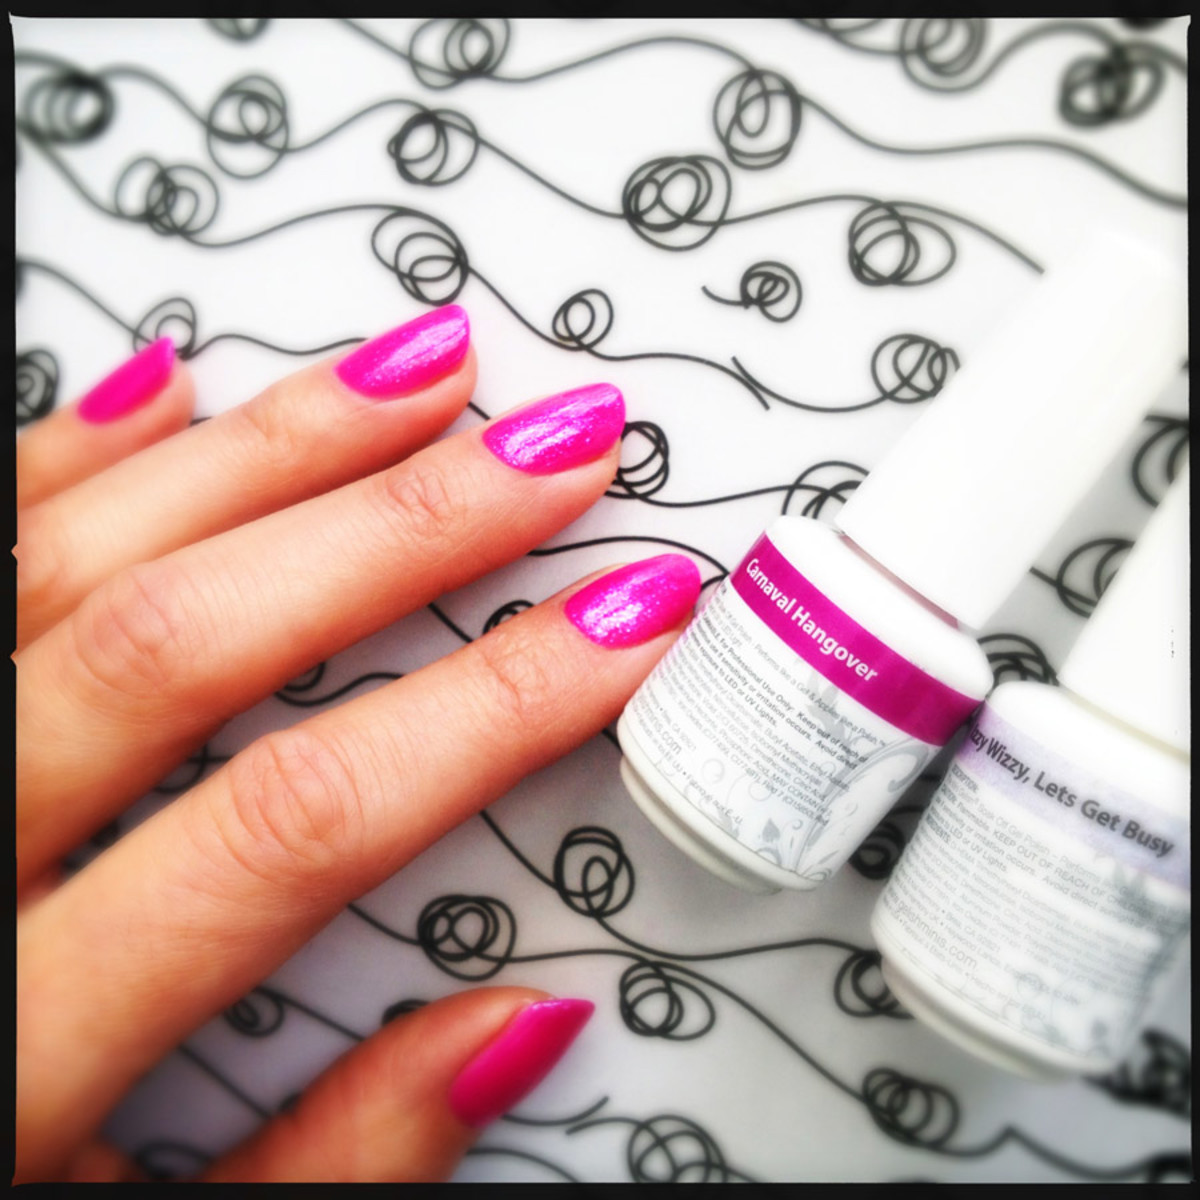 gelish carnaval hangover w/ izzy wizzy let's get busy top coat